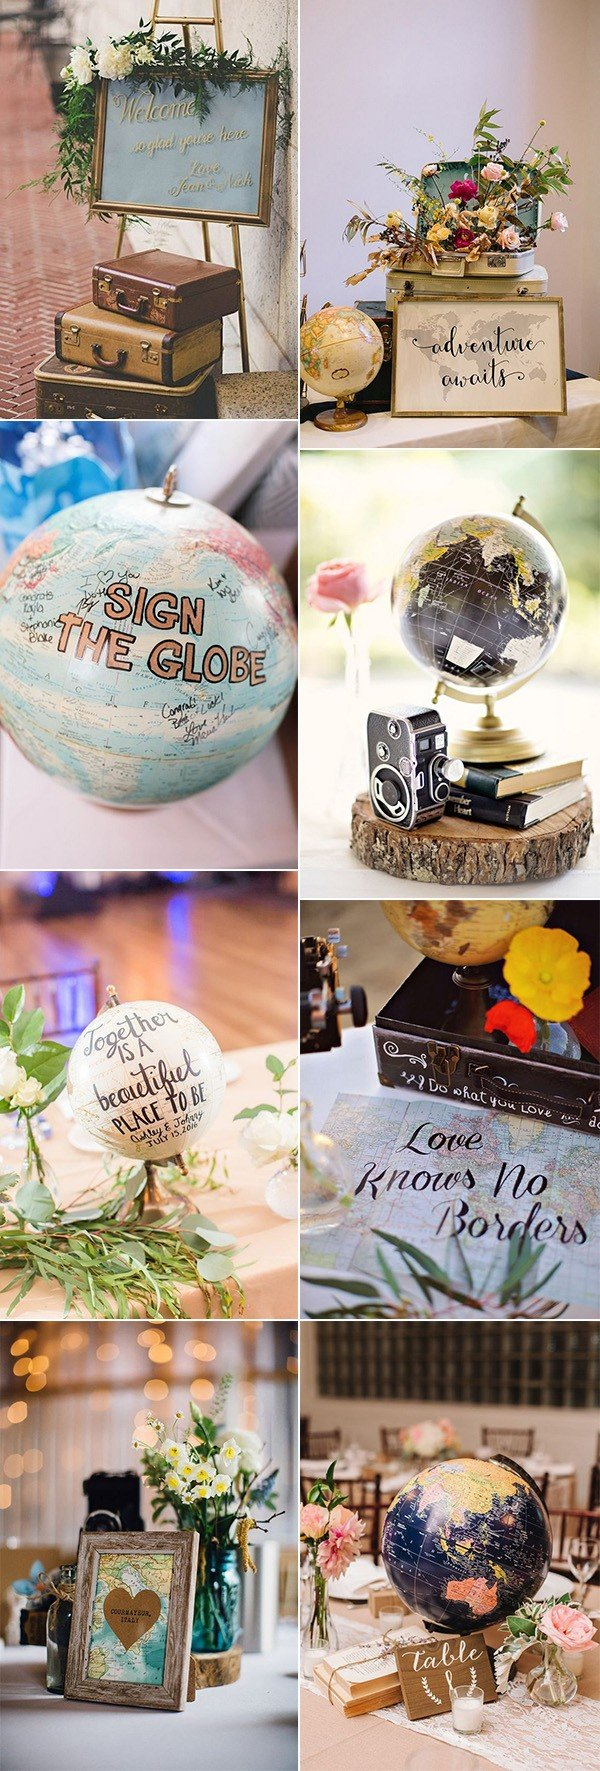 vintage travel themed wedding decoration ideas